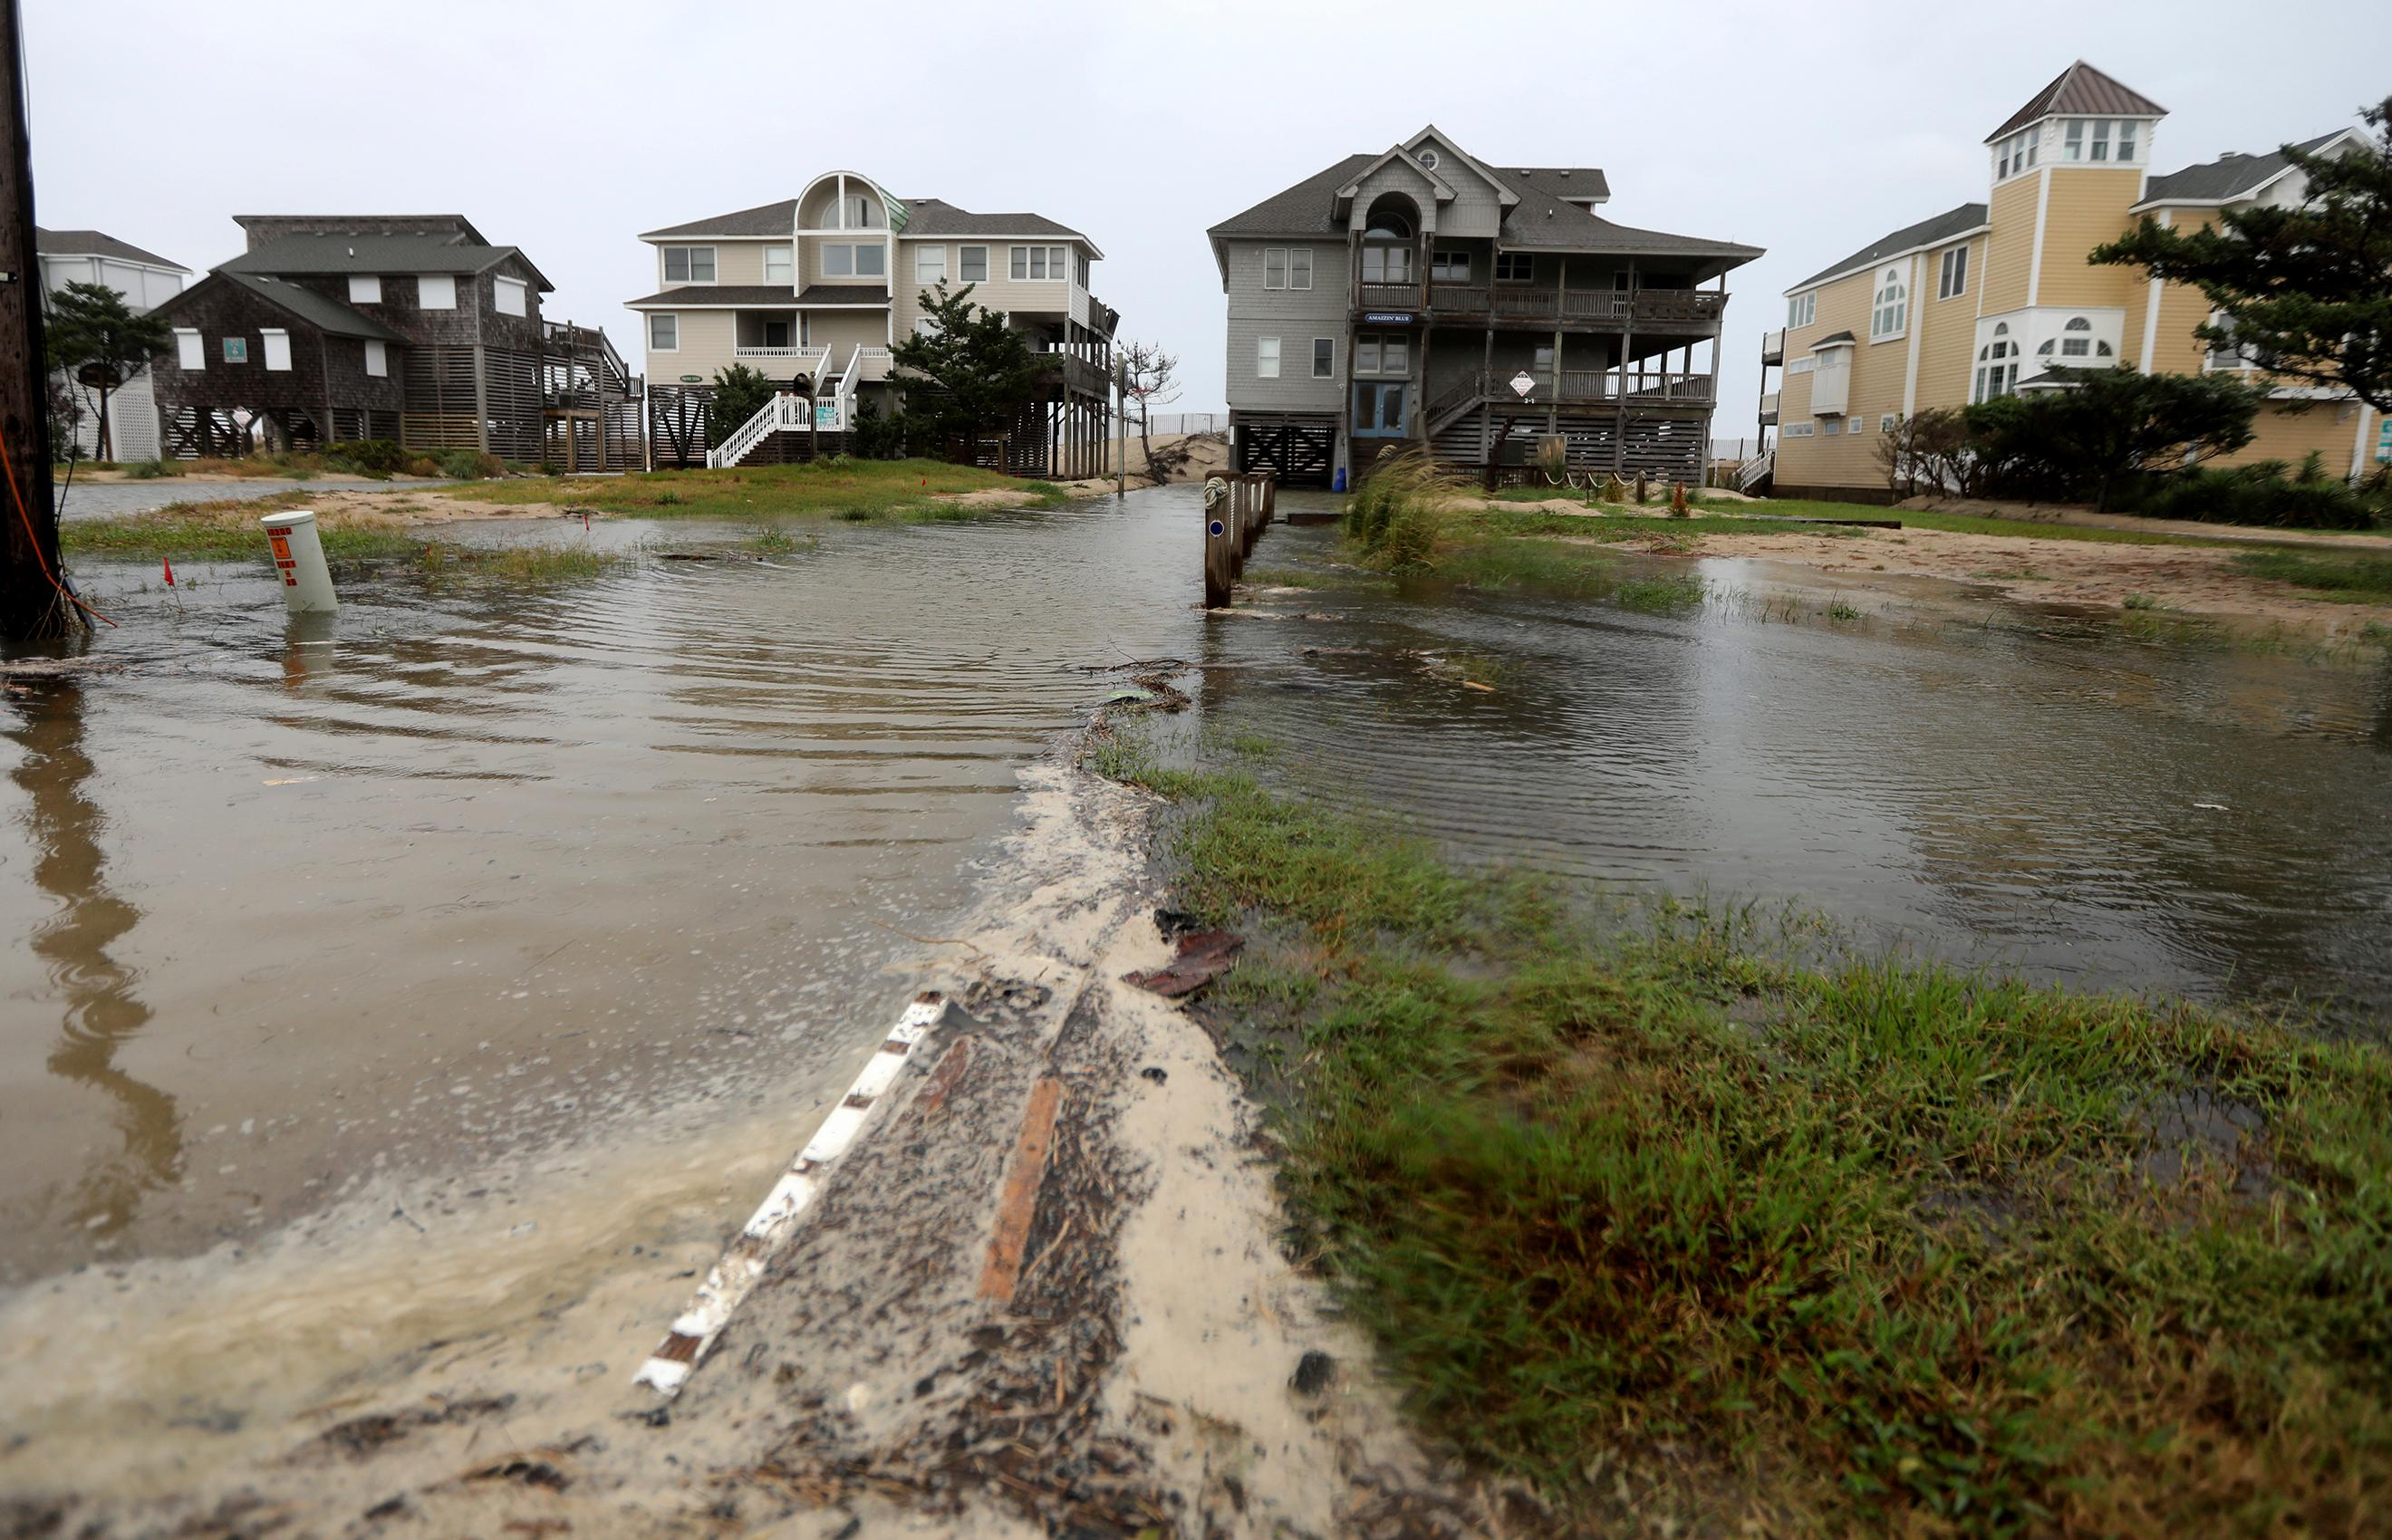 Ocean water breeches to the dunes in Avon, N.C., as the first effects of Hurricane Florence reach Hatteras Island on Thursday, Sept. 13, 2018.   (Steve Earley/The Virginian-Pilot via AP)